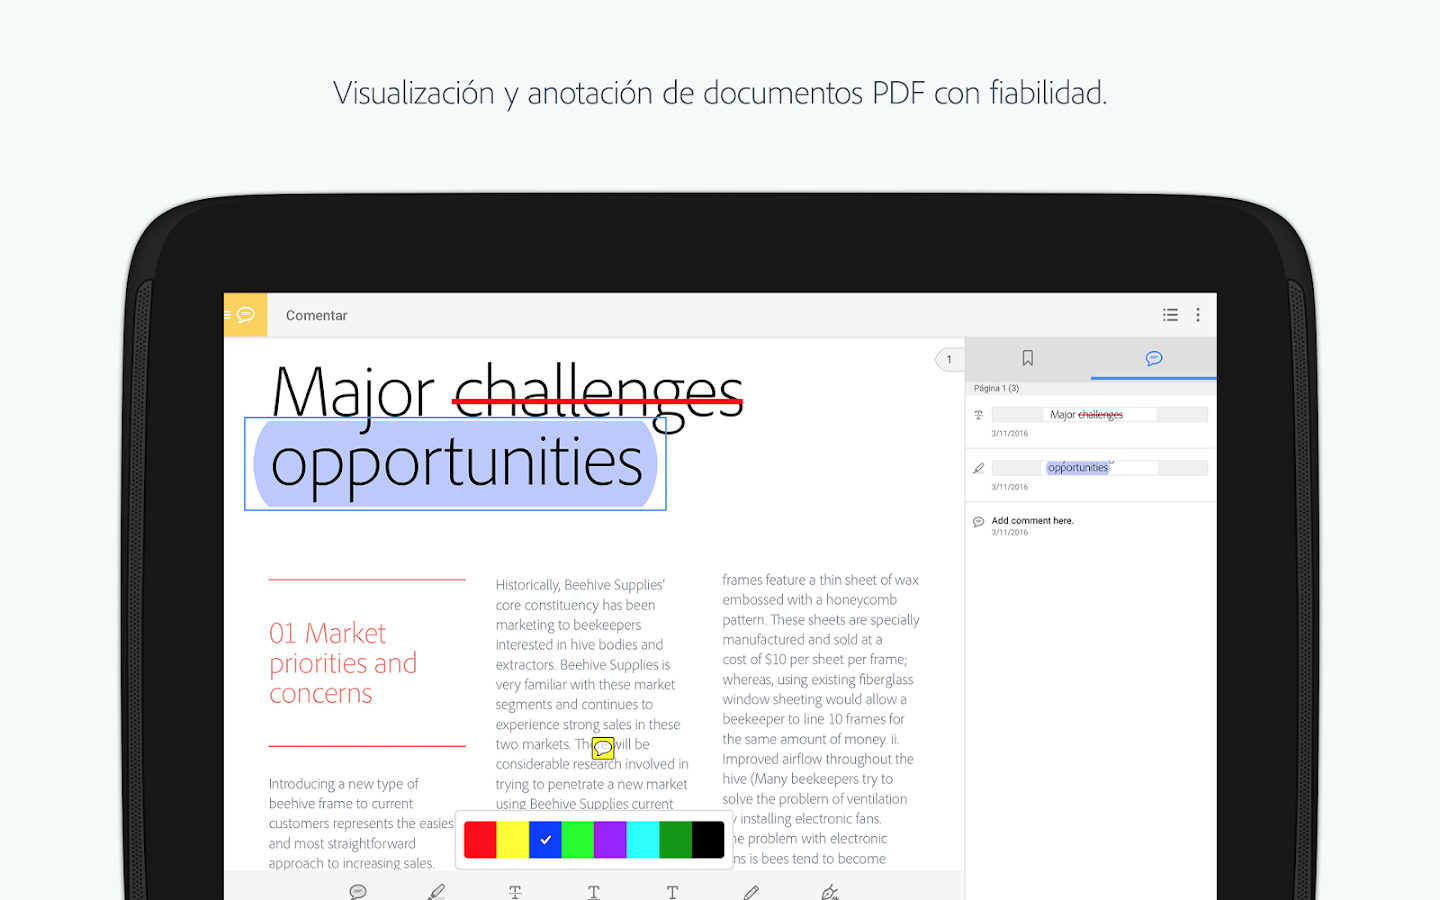 Adobe Acrobat Reader: captura de pantalla